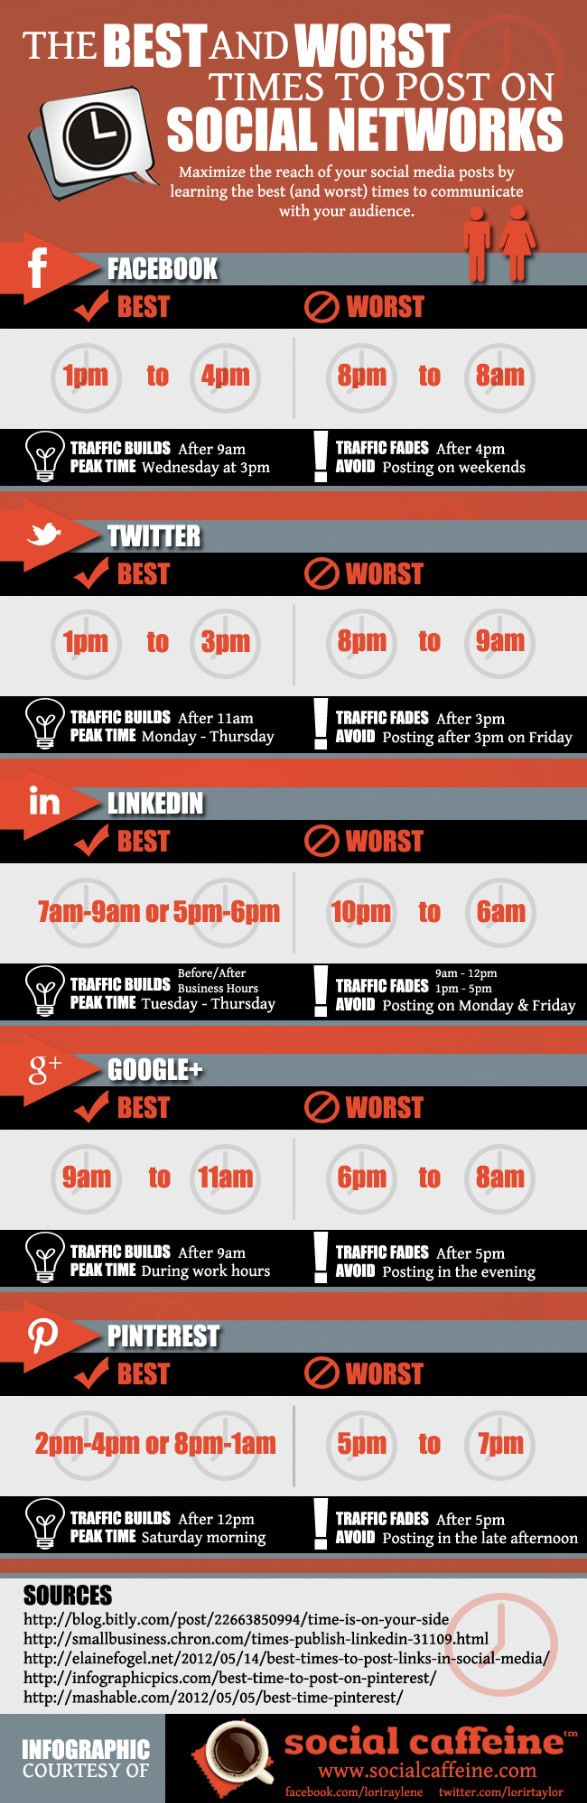 http://i2.wp.com/dustn.tv/wp-content/uploads/2013/05/Best-Times-to-Post-on-Social-Media-INFOGRAPHIC-Social-Media-Today.jpeg?resize=587%2C1803